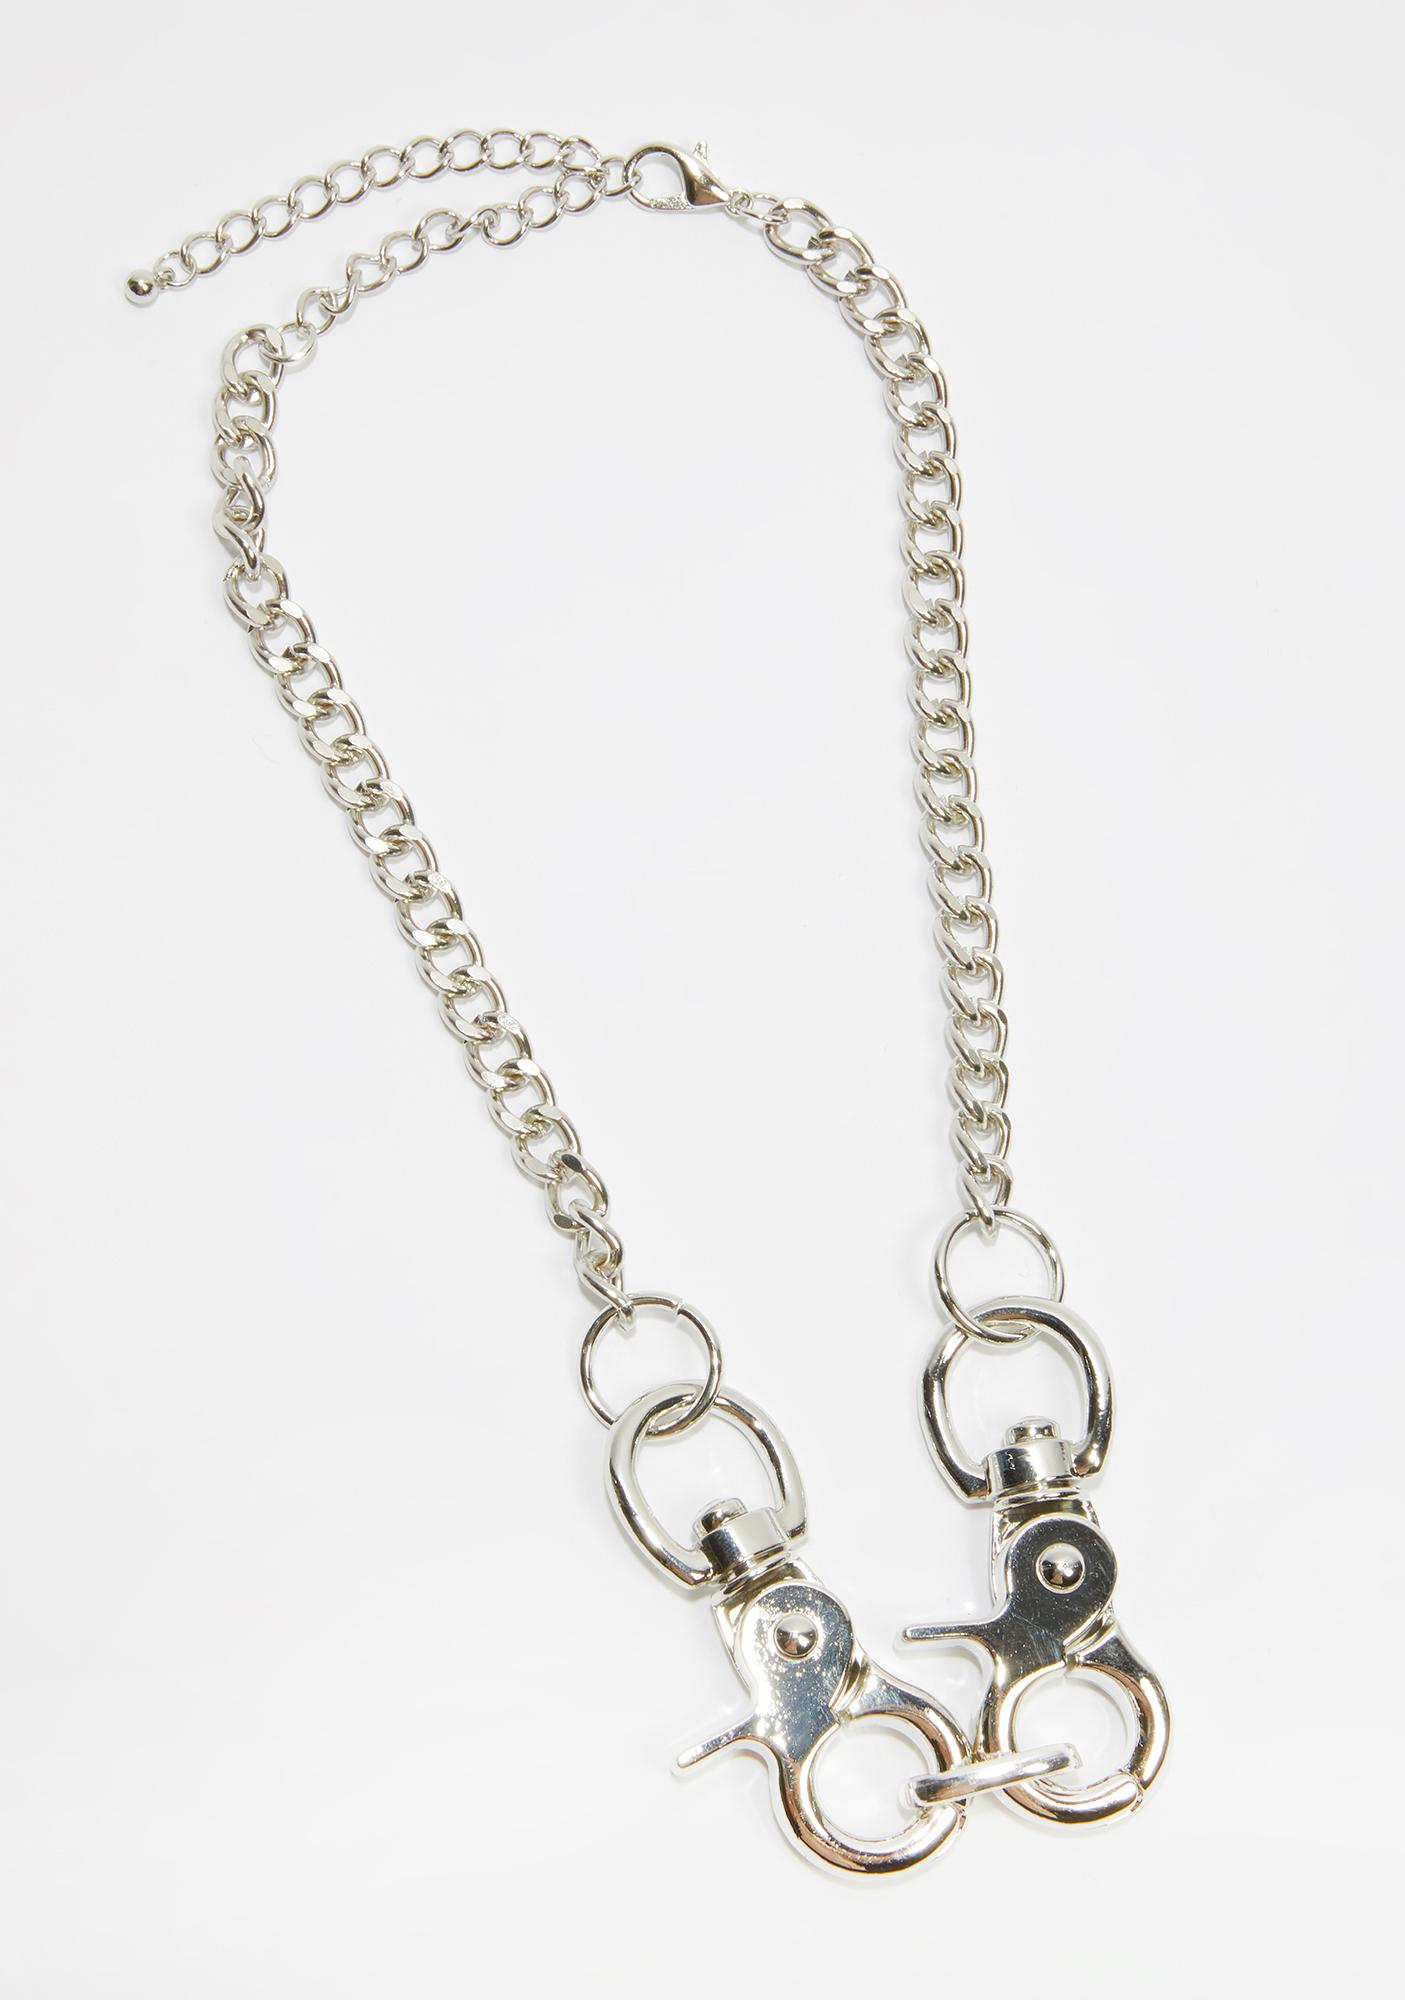 Let's Build Chain Necklace